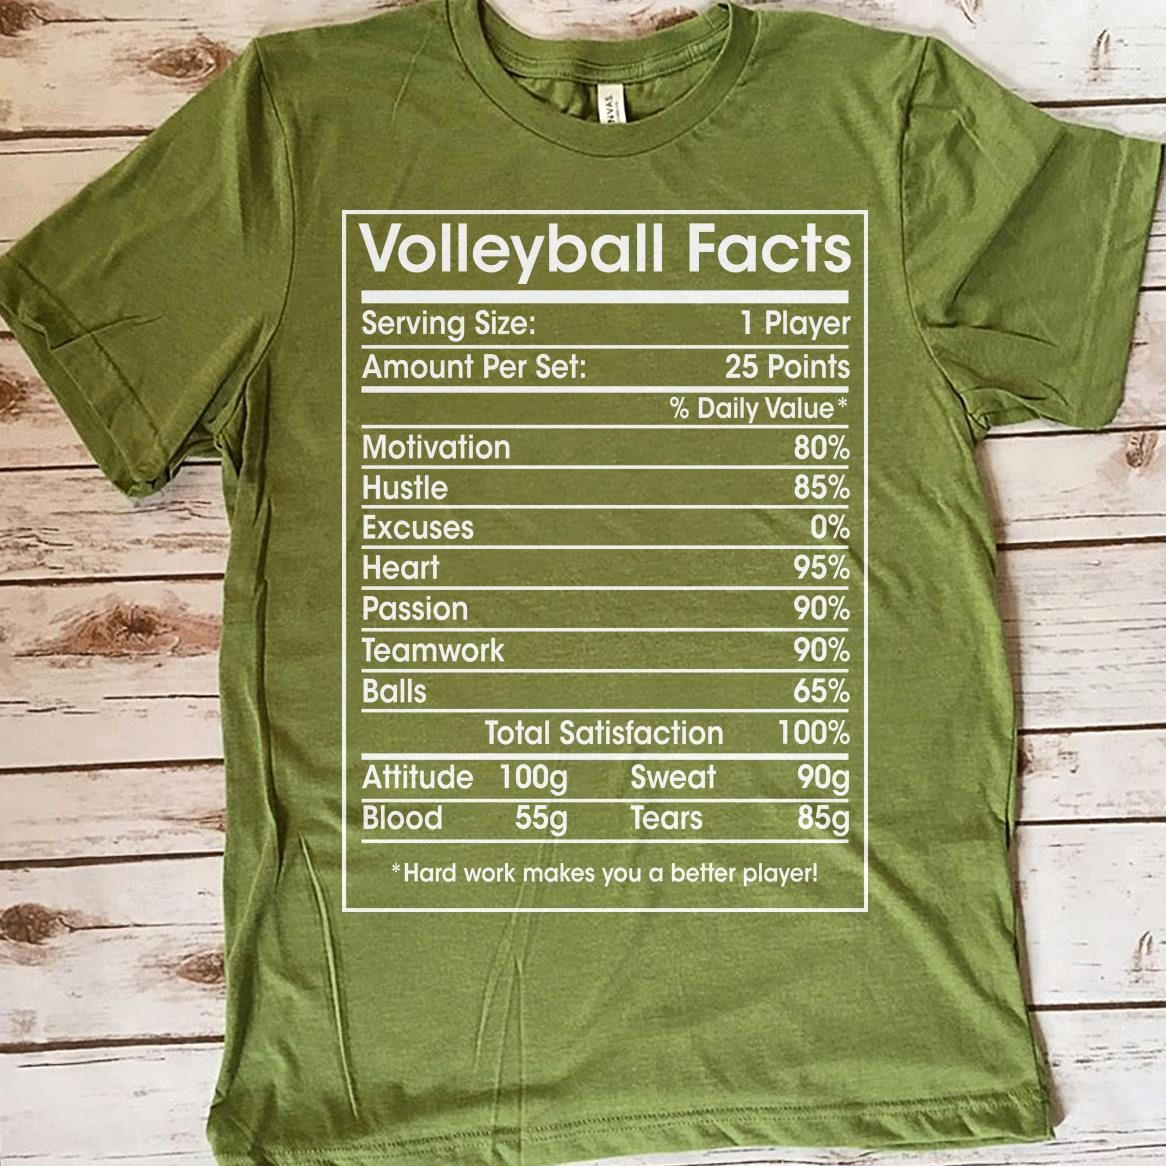 Volleyball Facts Great Volleyball T Shirt Mug Bag Gift For Family Friends Volleyball Players Volleyball In 2020 Volleyball Facts Volleyball Tshirts Golden Retriever